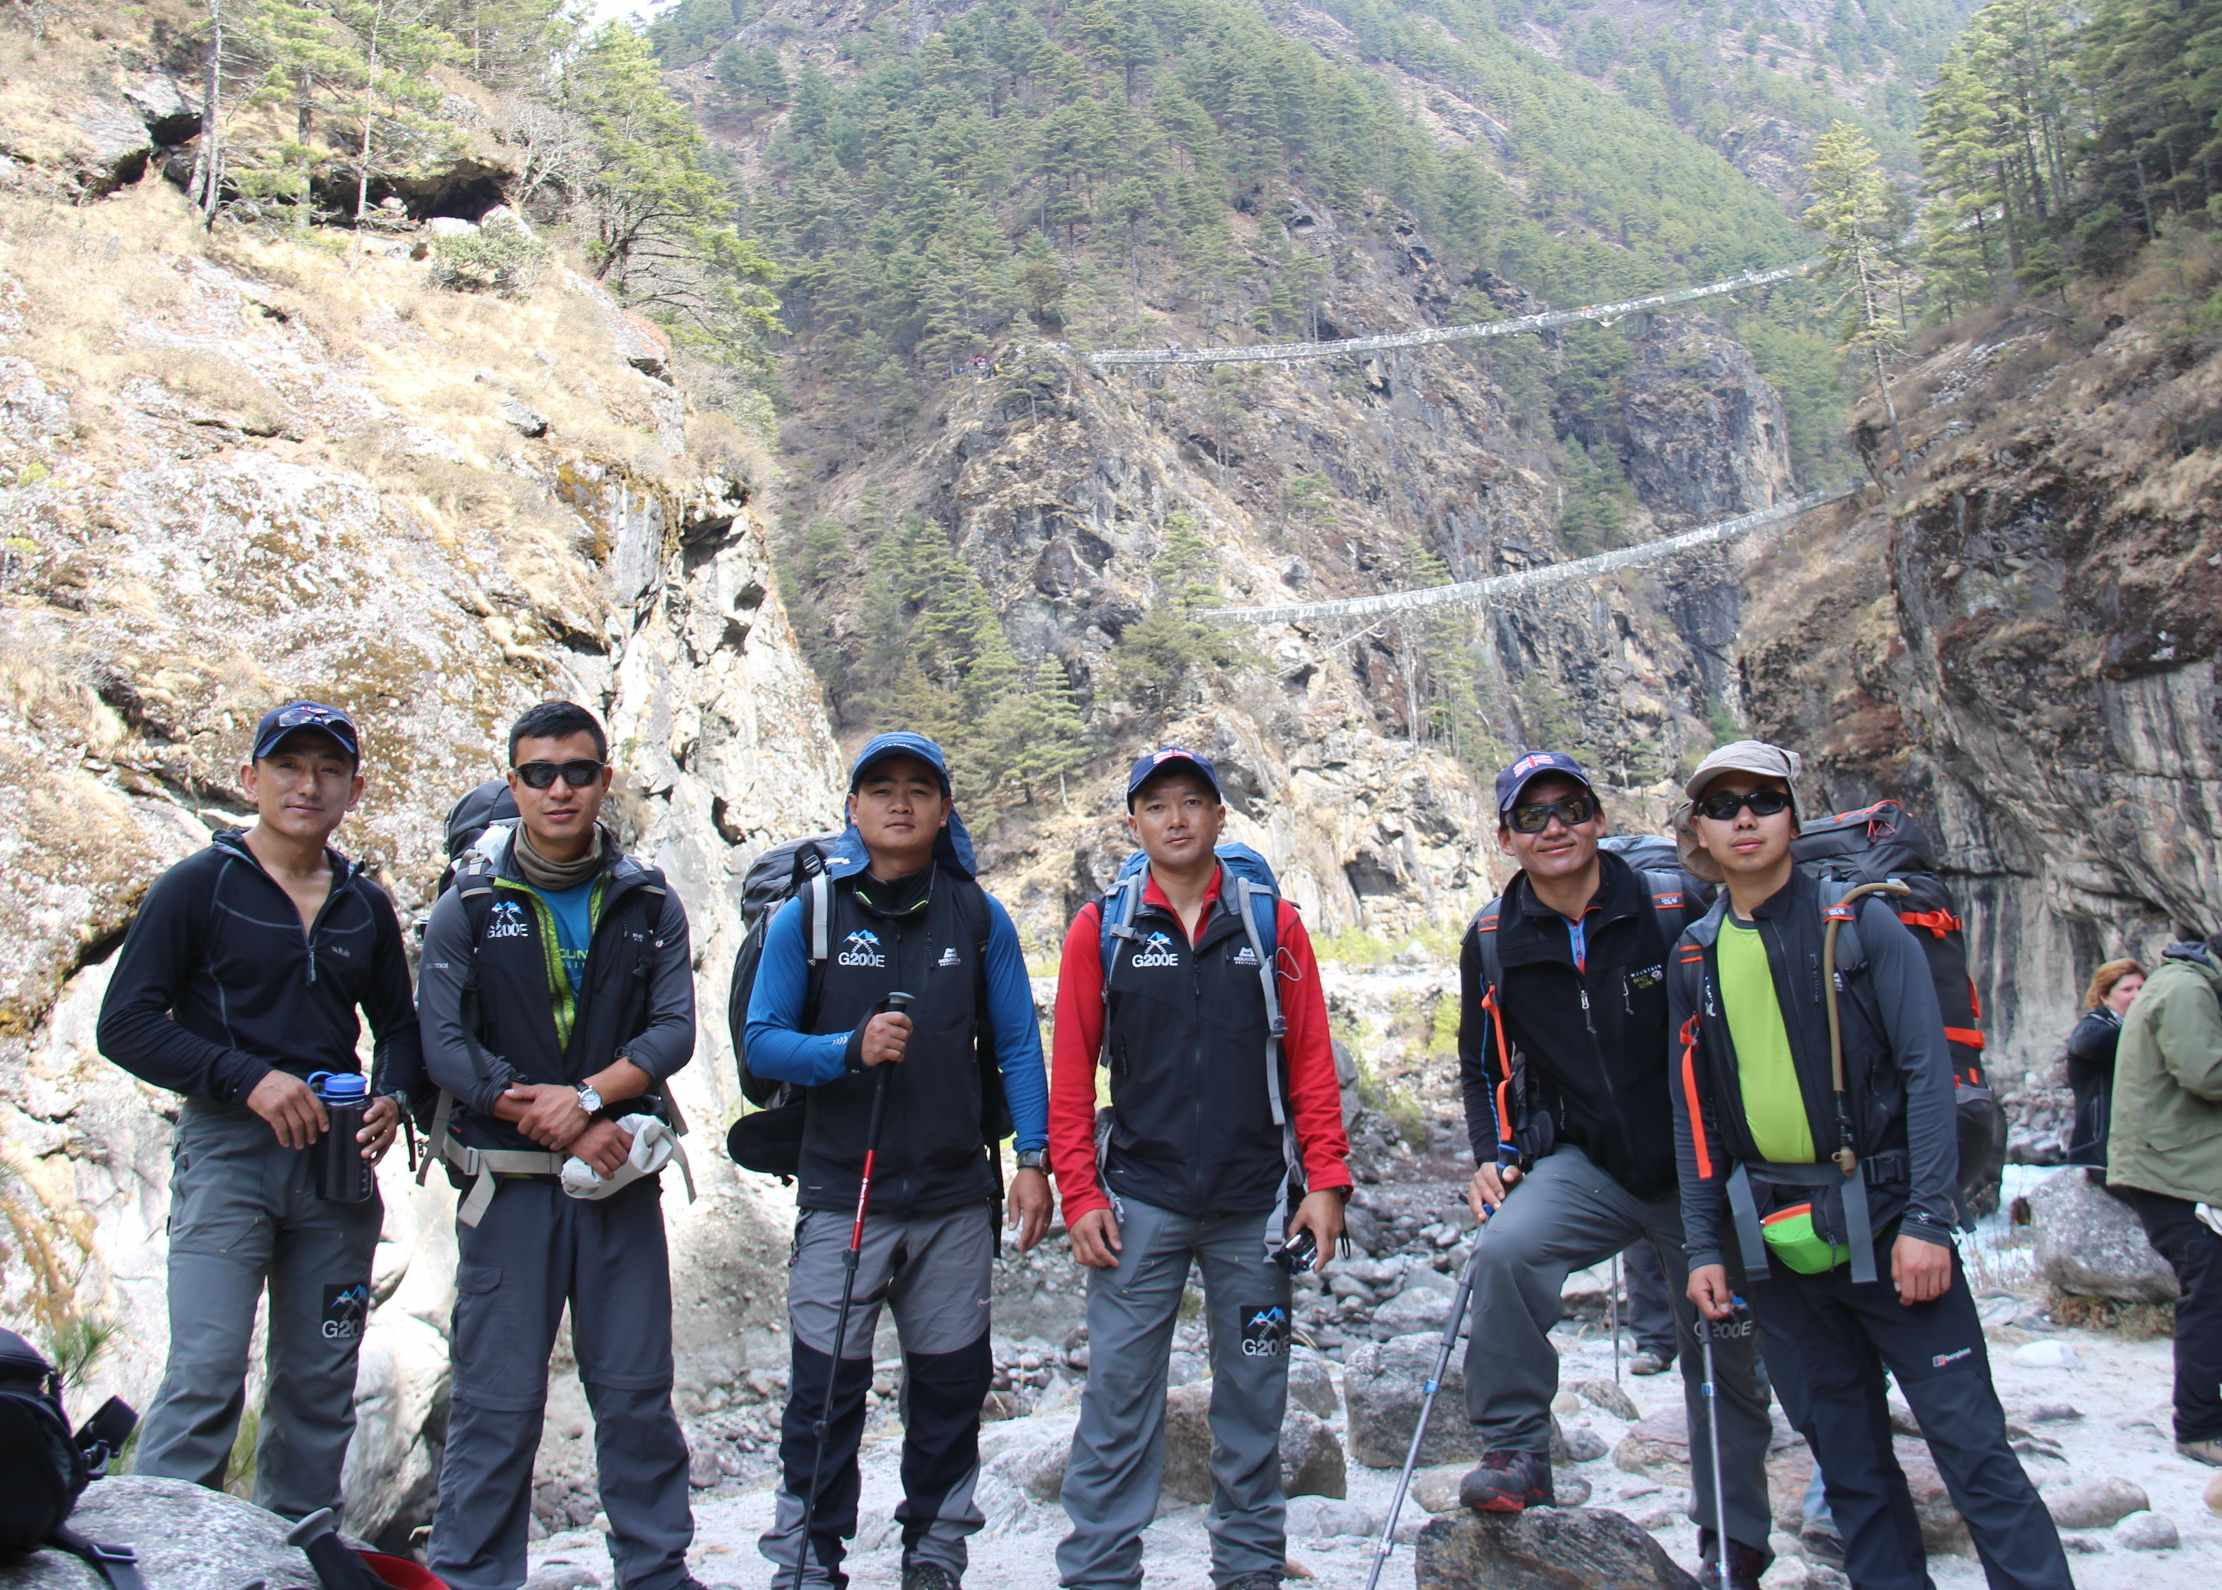 The Everest team